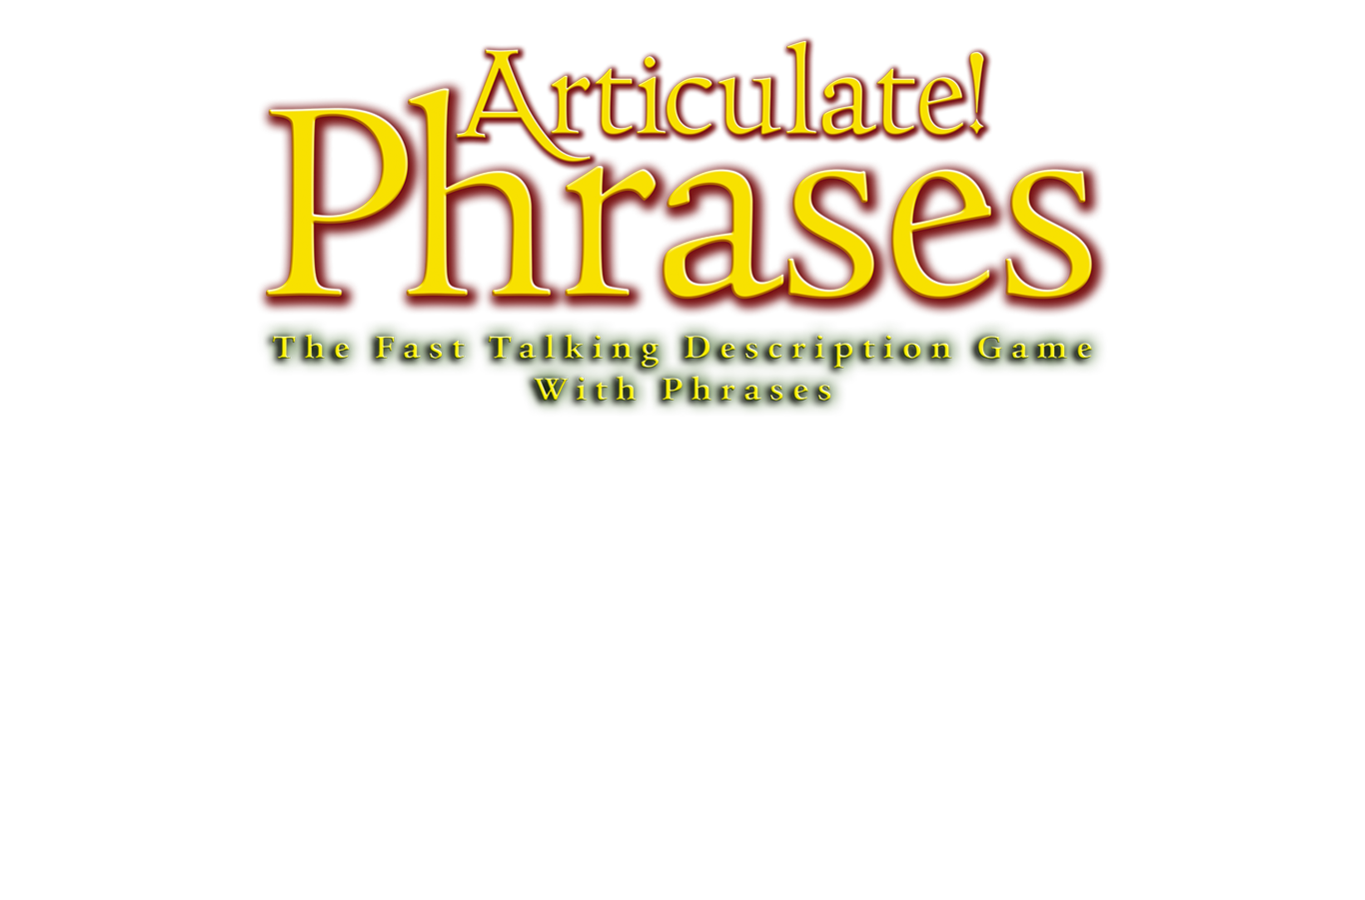 Articulate! Phrases